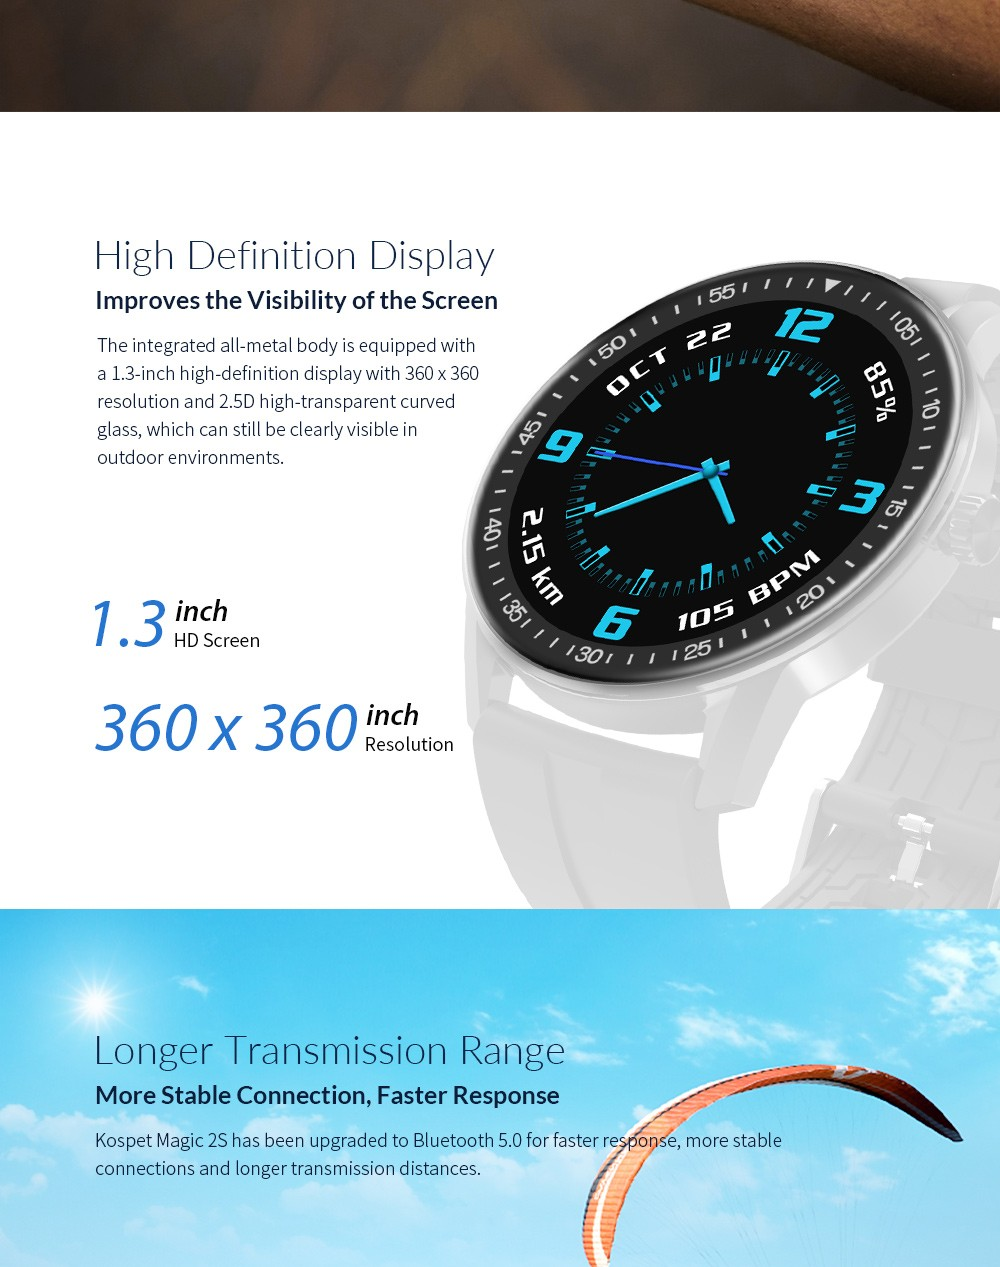 Kospet MAGIC 2S 1.3 inch Smart Watch HD Display